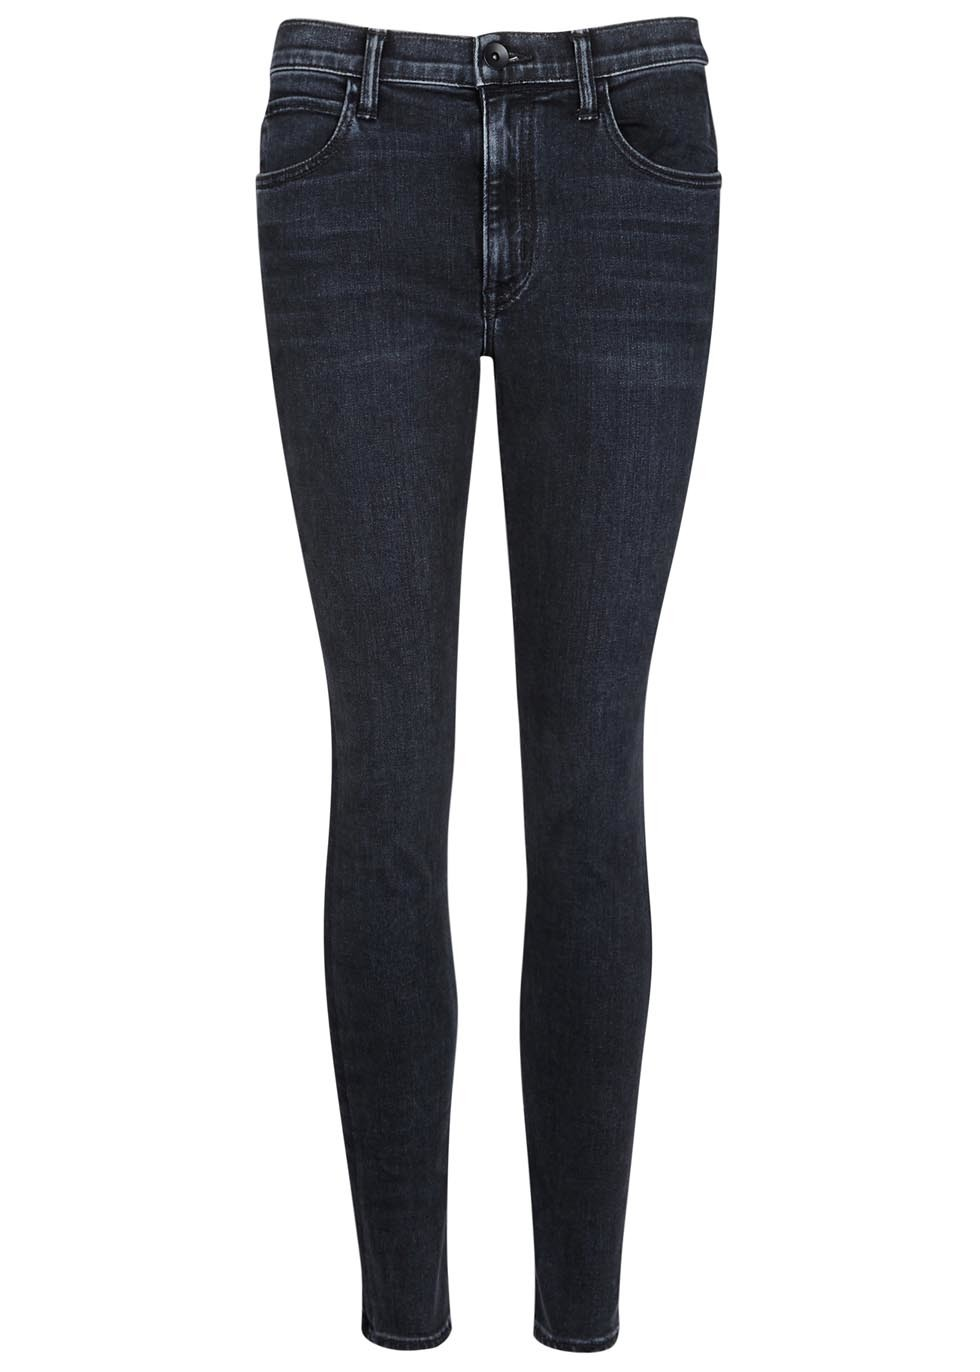 Black Cropped Skinny Jeans - style: skinny leg; length: standard; pattern: plain; pocket detail: traditional 5 pocket; waist: mid/regular rise; predominant colour: black; occasions: casual, creative work; fibres: cotton - stretch; texture group: denim; pattern type: fabric; season: s/s 2016; wardrobe: basic